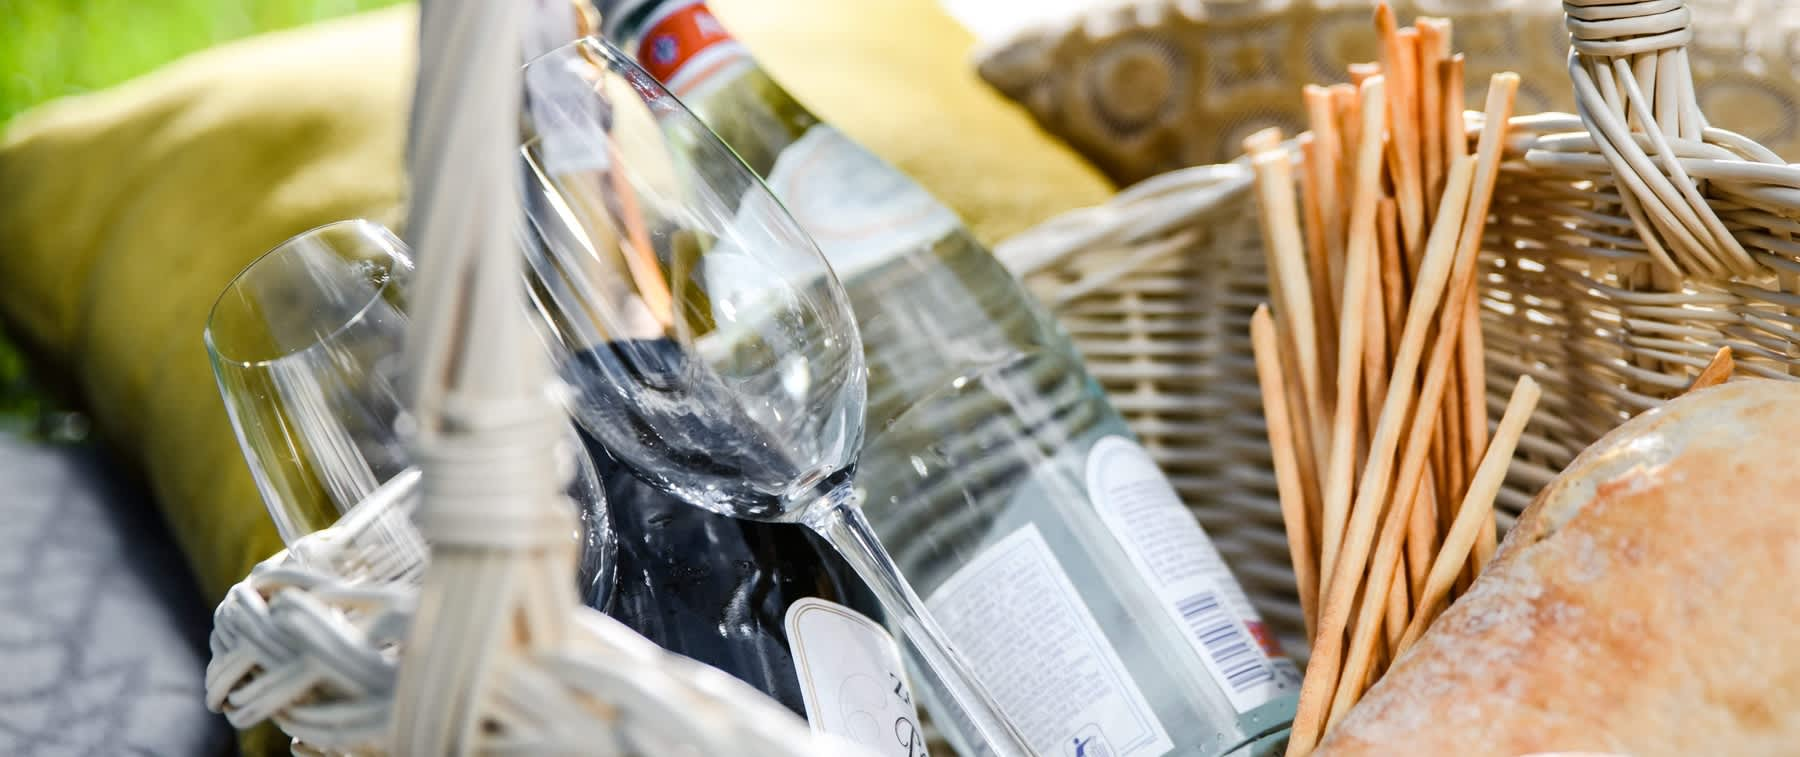 Champagne and glasses in picnic basket